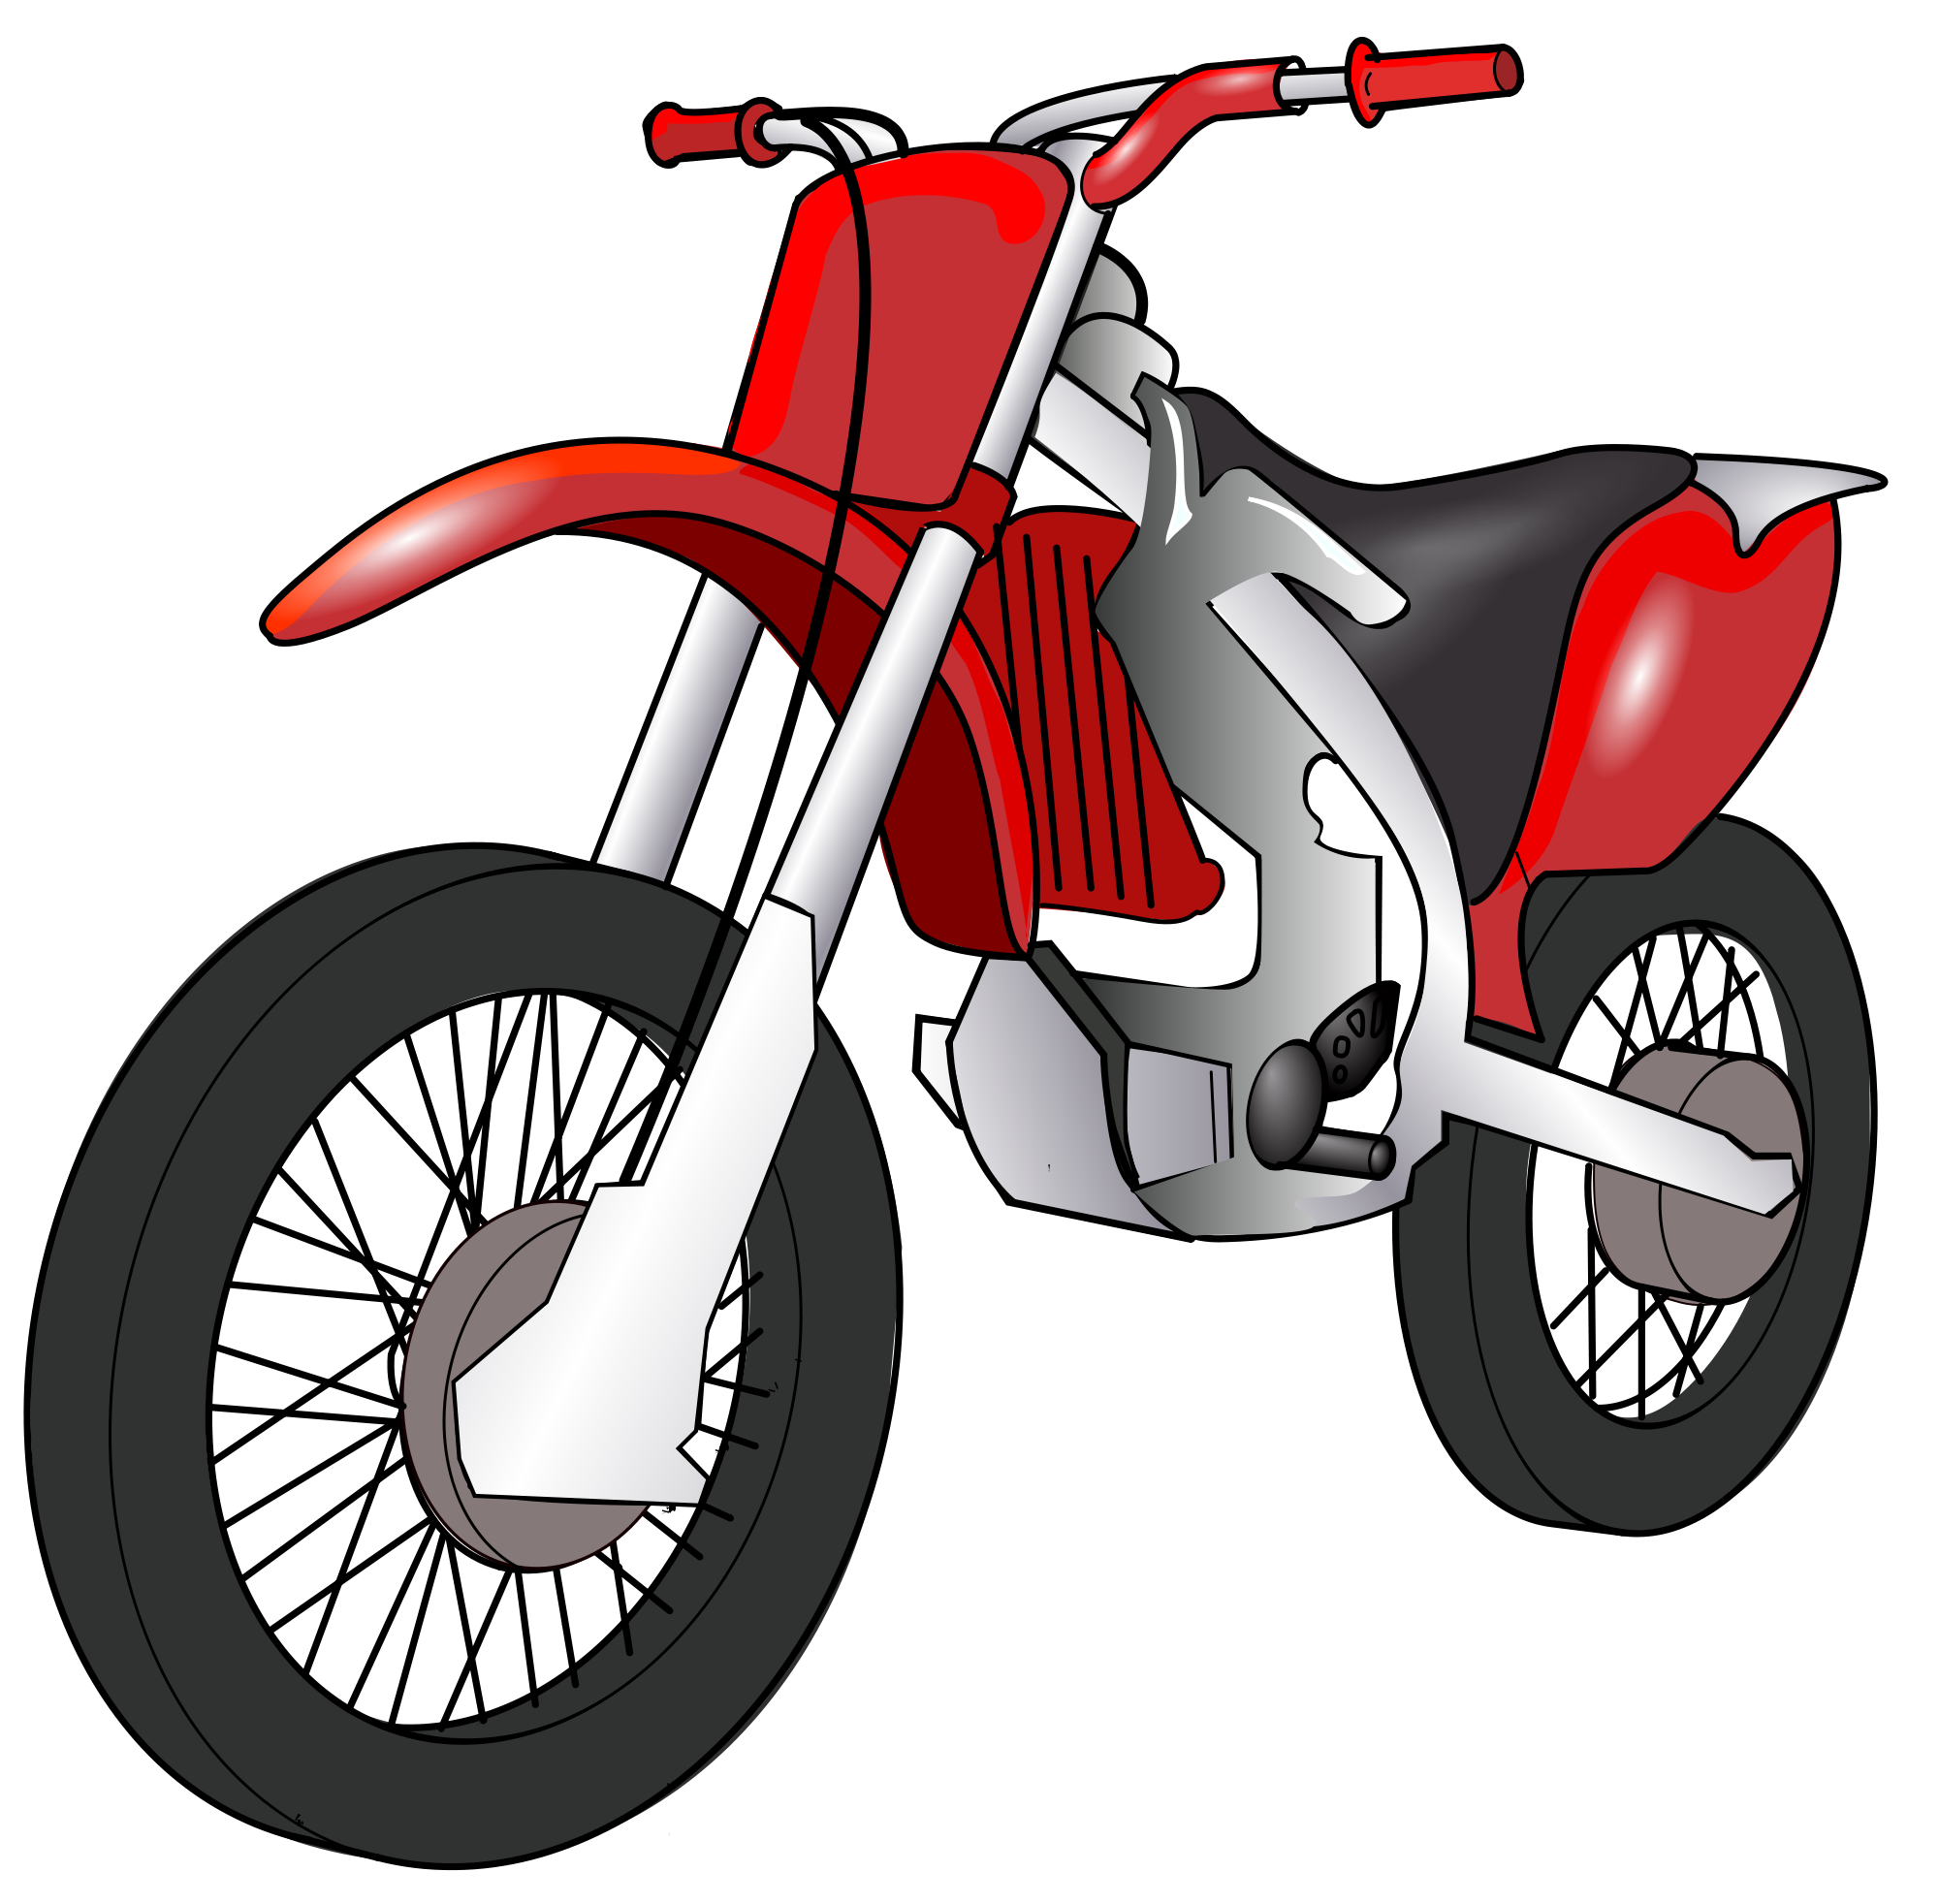 Bike clipart motorbike. File svg wikimedia commons